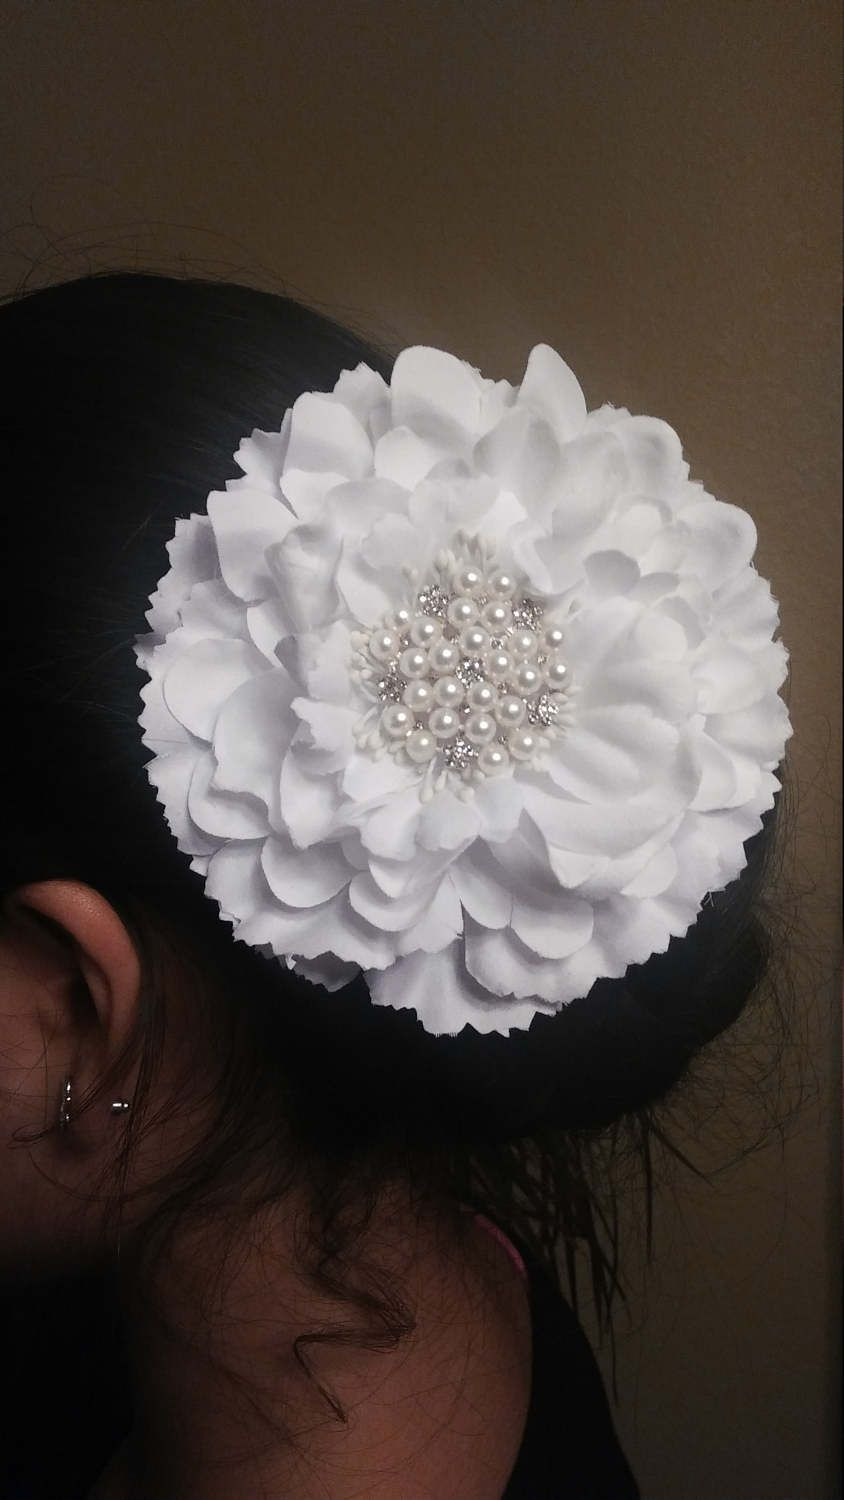 White flower hair clip wedding hair accessory first communion hair white flower hair clip wedding hair accessory first communion hair clip prom hair mightylinksfo